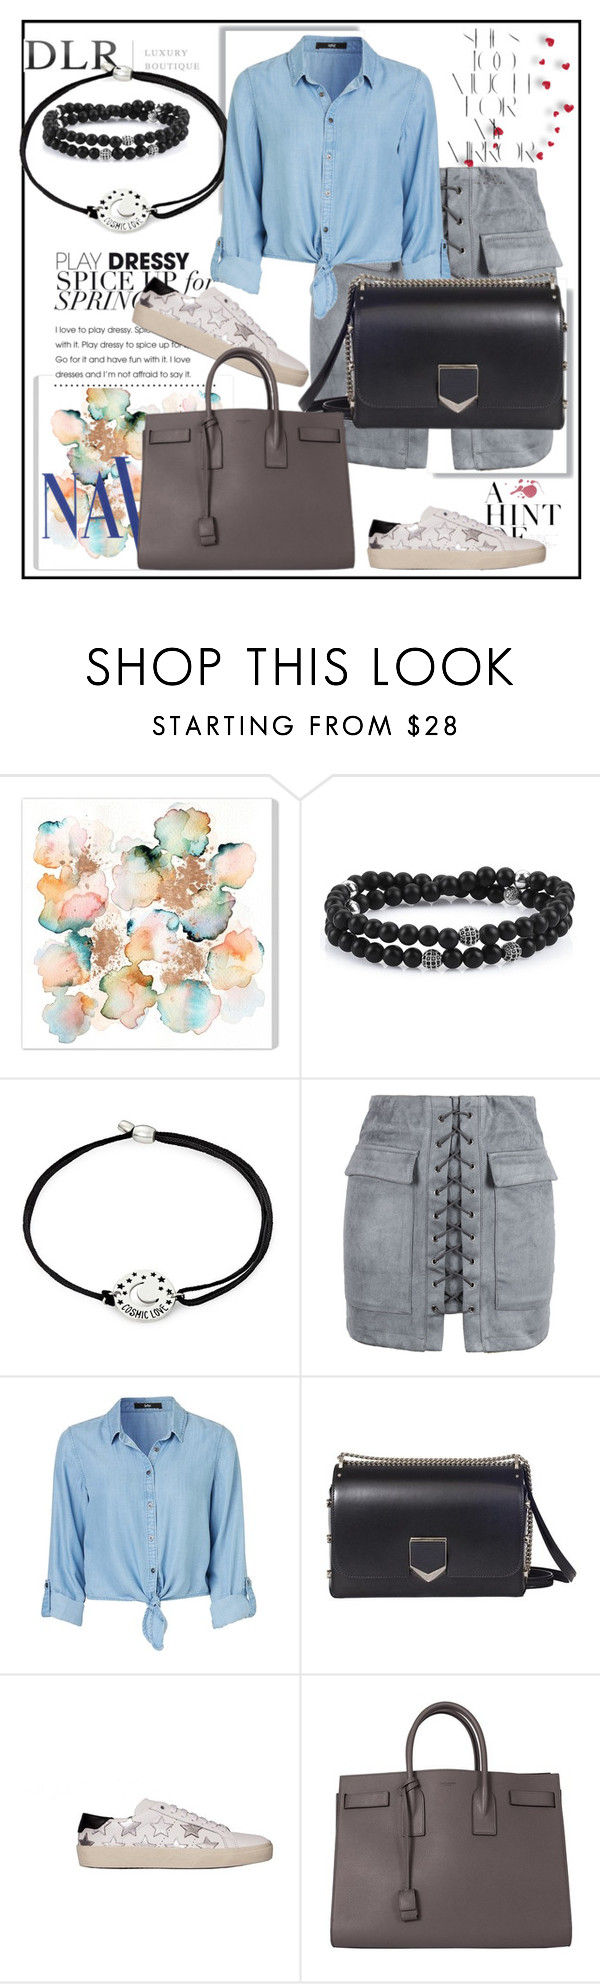 """""""DLRBOUTIQUE.COM"""" by lila2510 ❤ liked on Polyvore featuring COVERGIRL, Alex and Ani, WithChic, Jimmy Choo, Yves Saint Laurent, Rika, DLRLuxuryBoutique and dlrboutique"""